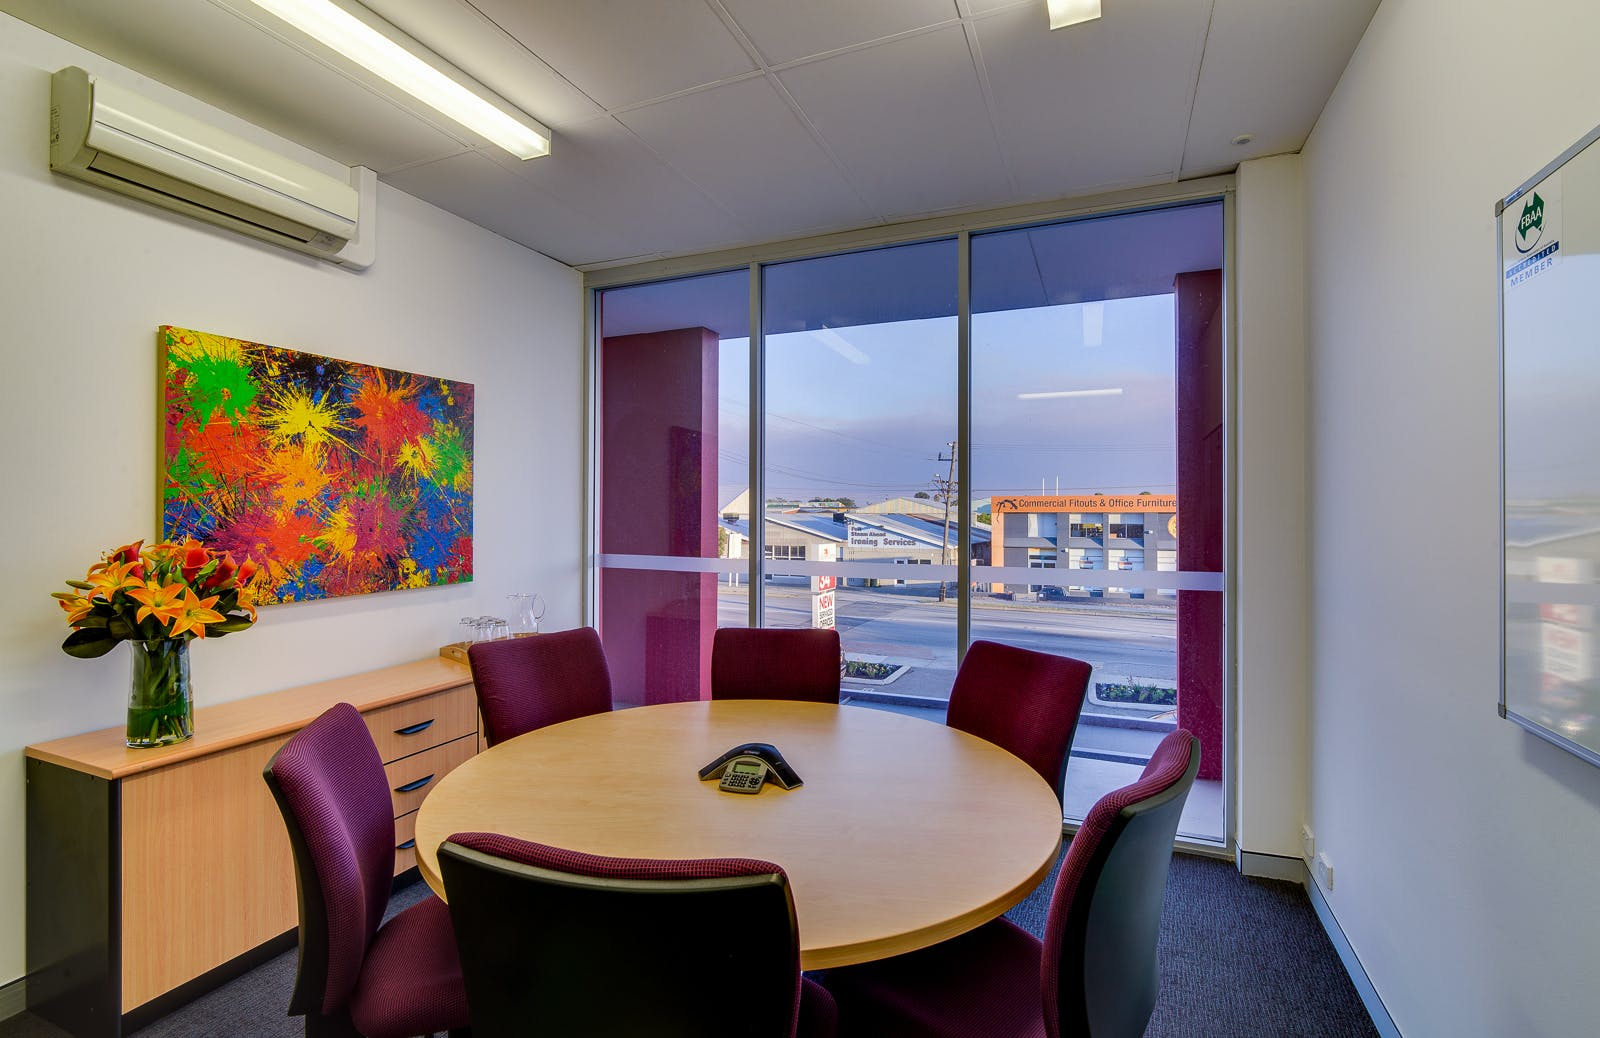 Office 12, serviced office at The Aspire Centre, image 6